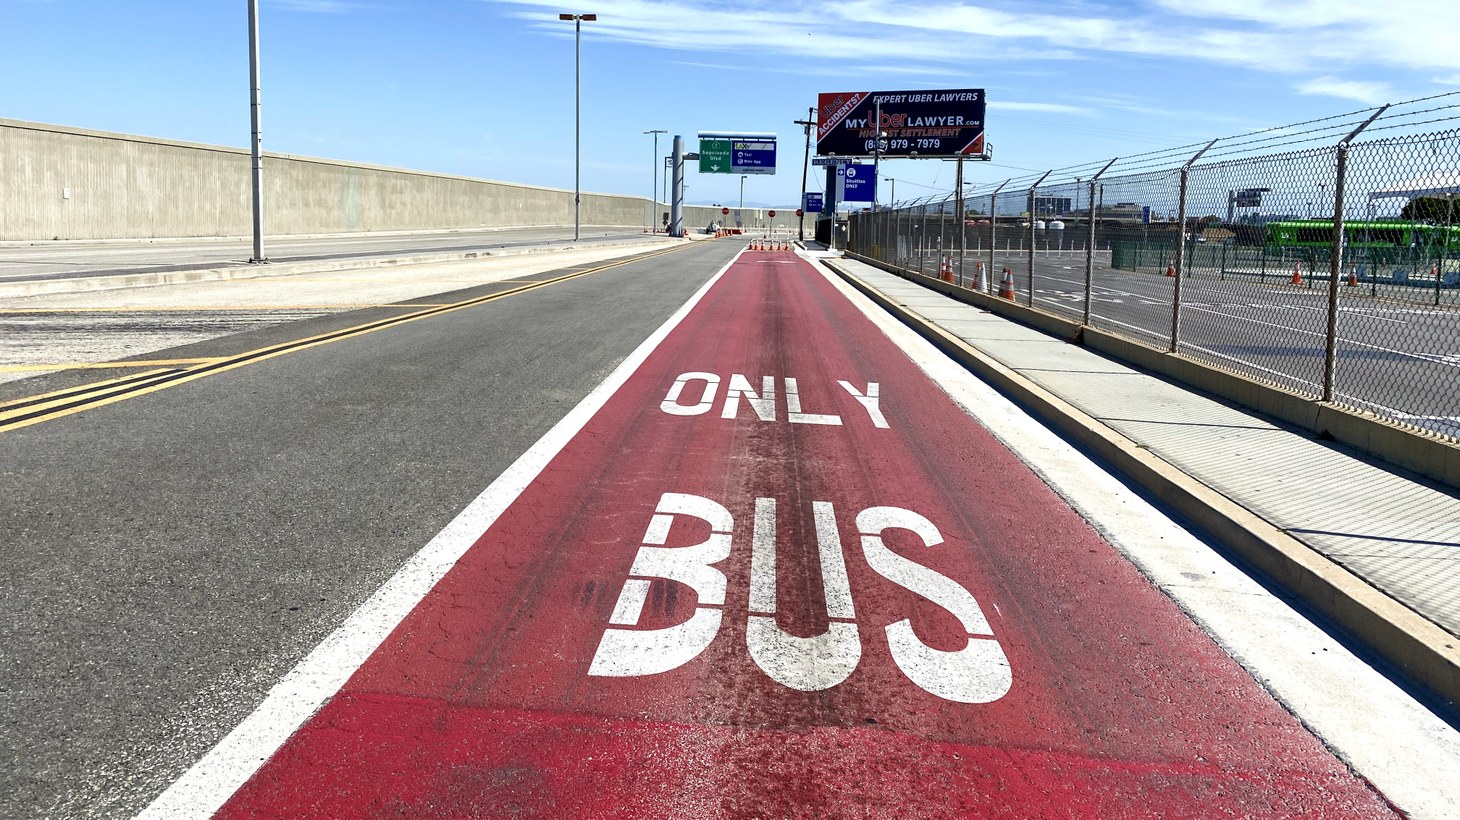 The bus lane at the empty LAX airport, May 14, 2020. Public transit ridership in LA has been down during the coronavirus pandemic. What will the future of public transportation look like?